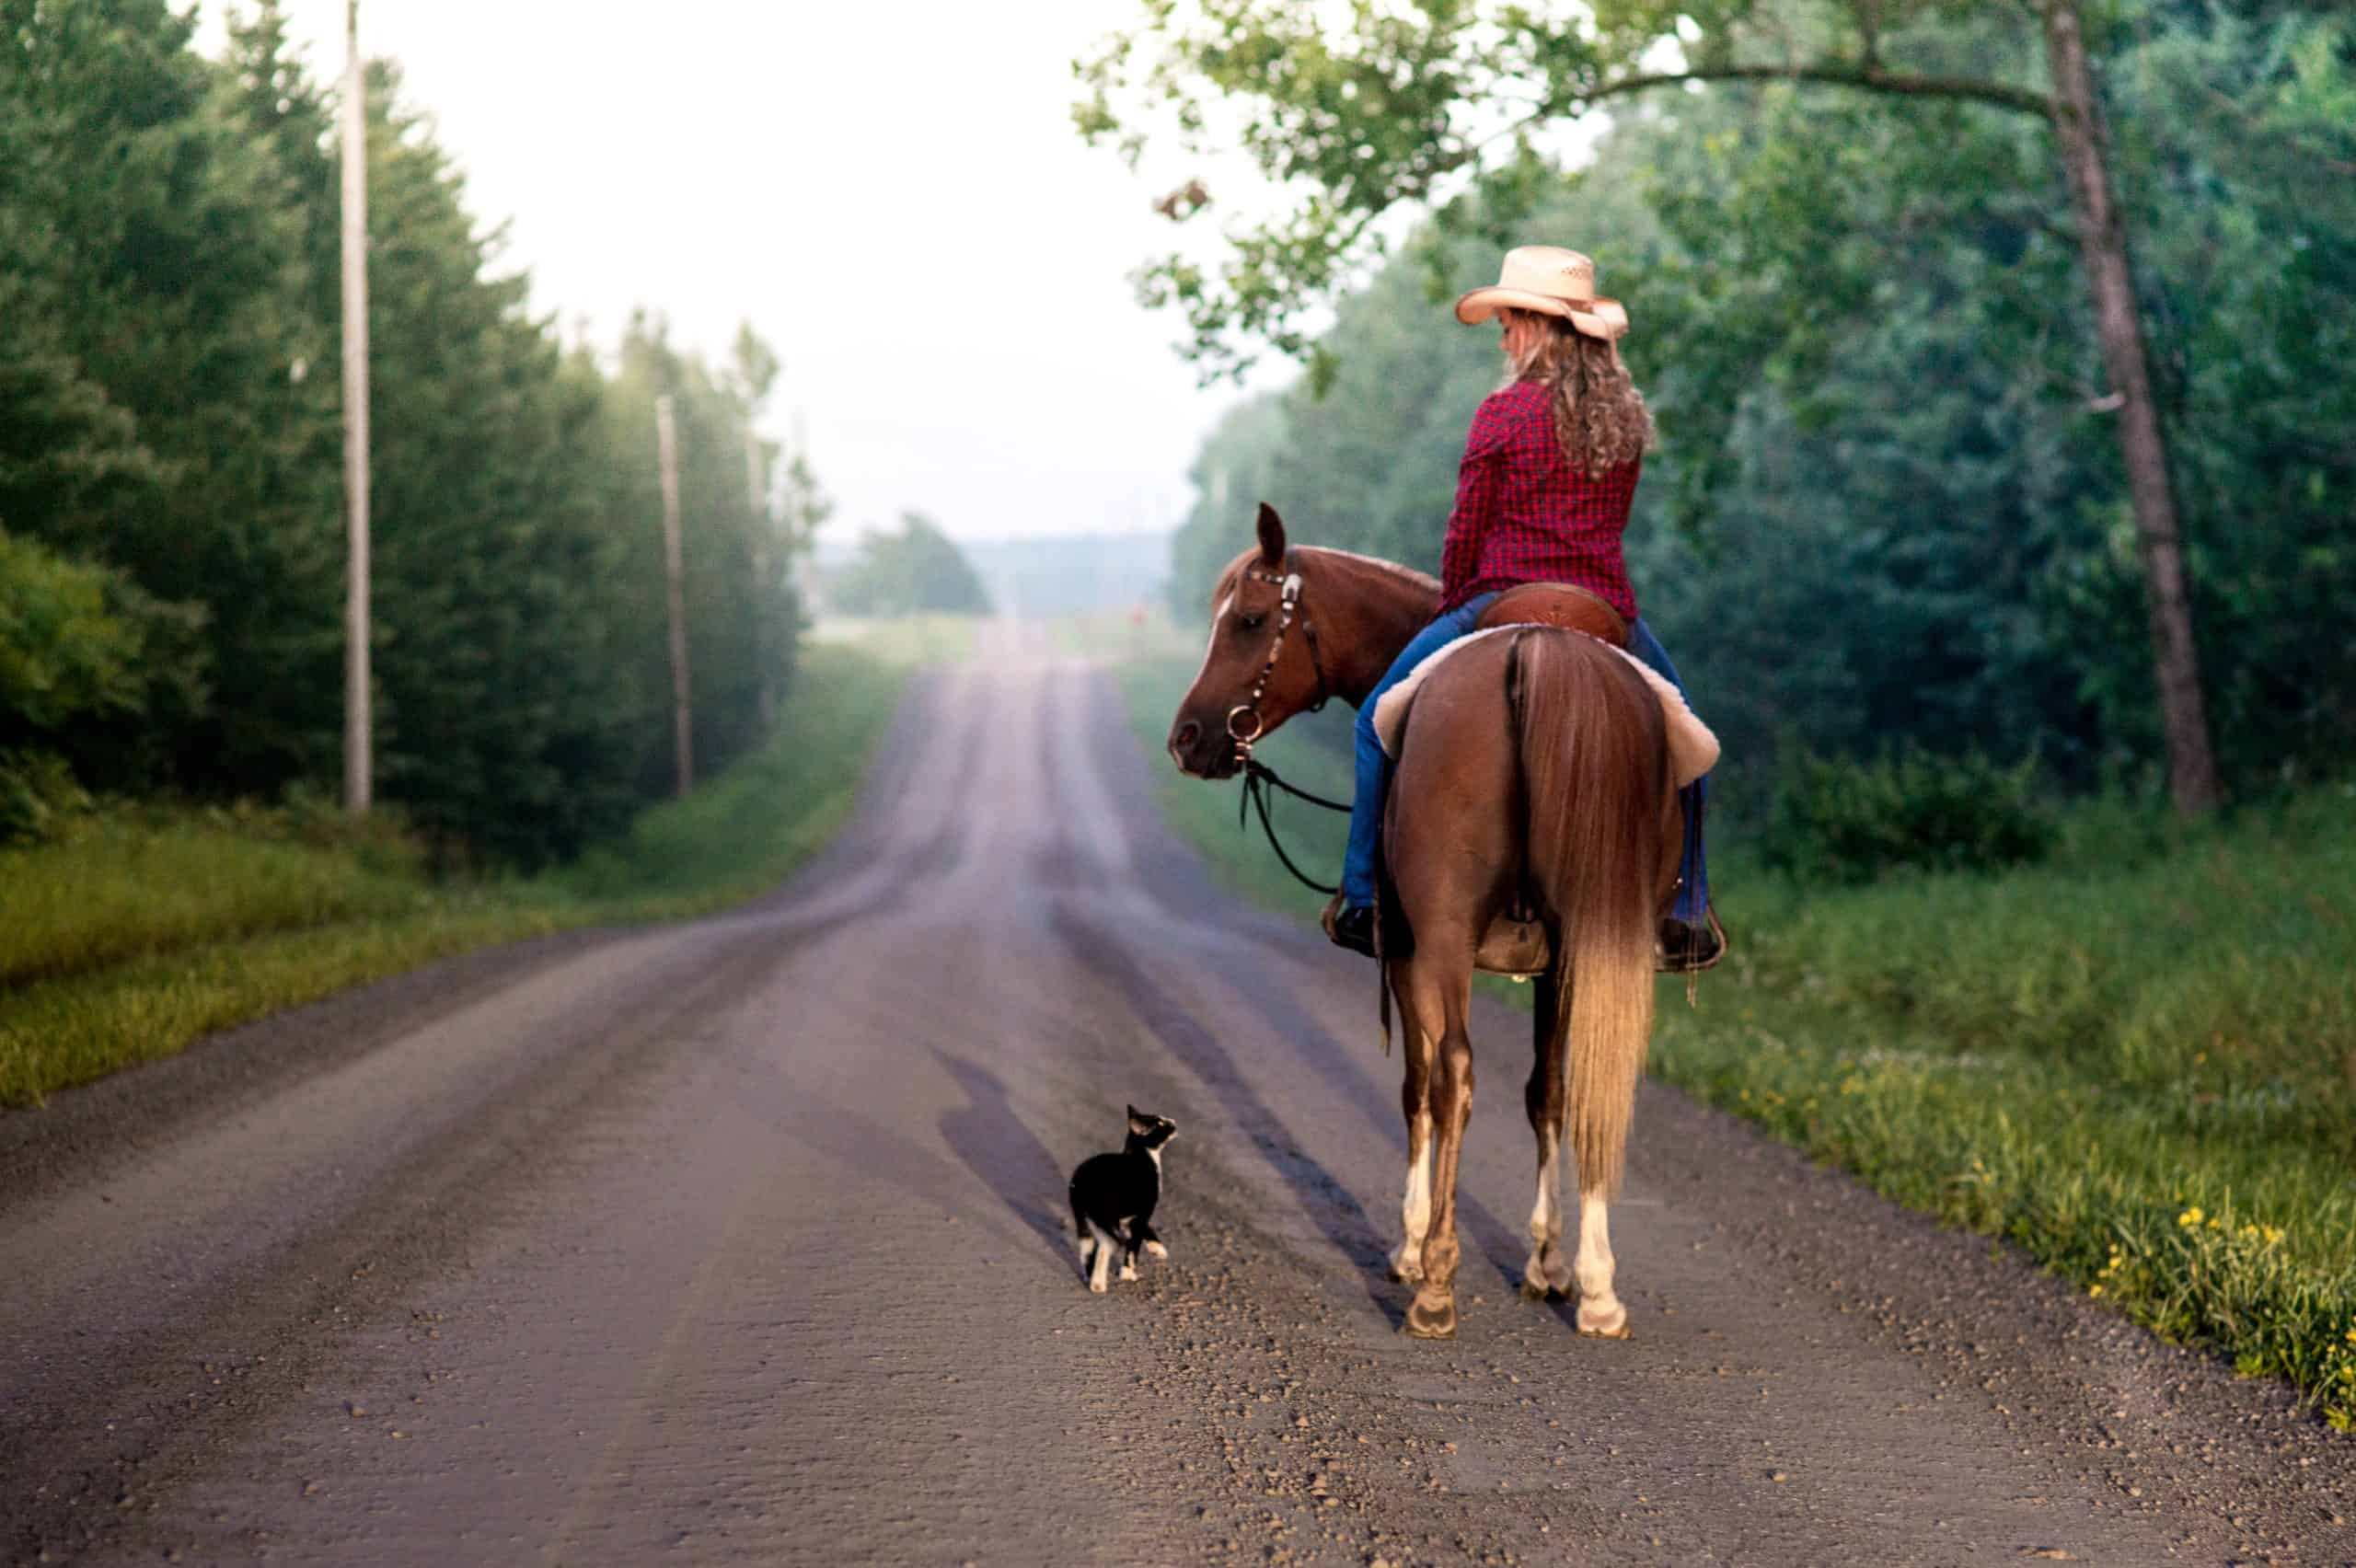 Cat follows Horseback Rider on Country Road in Summer Time